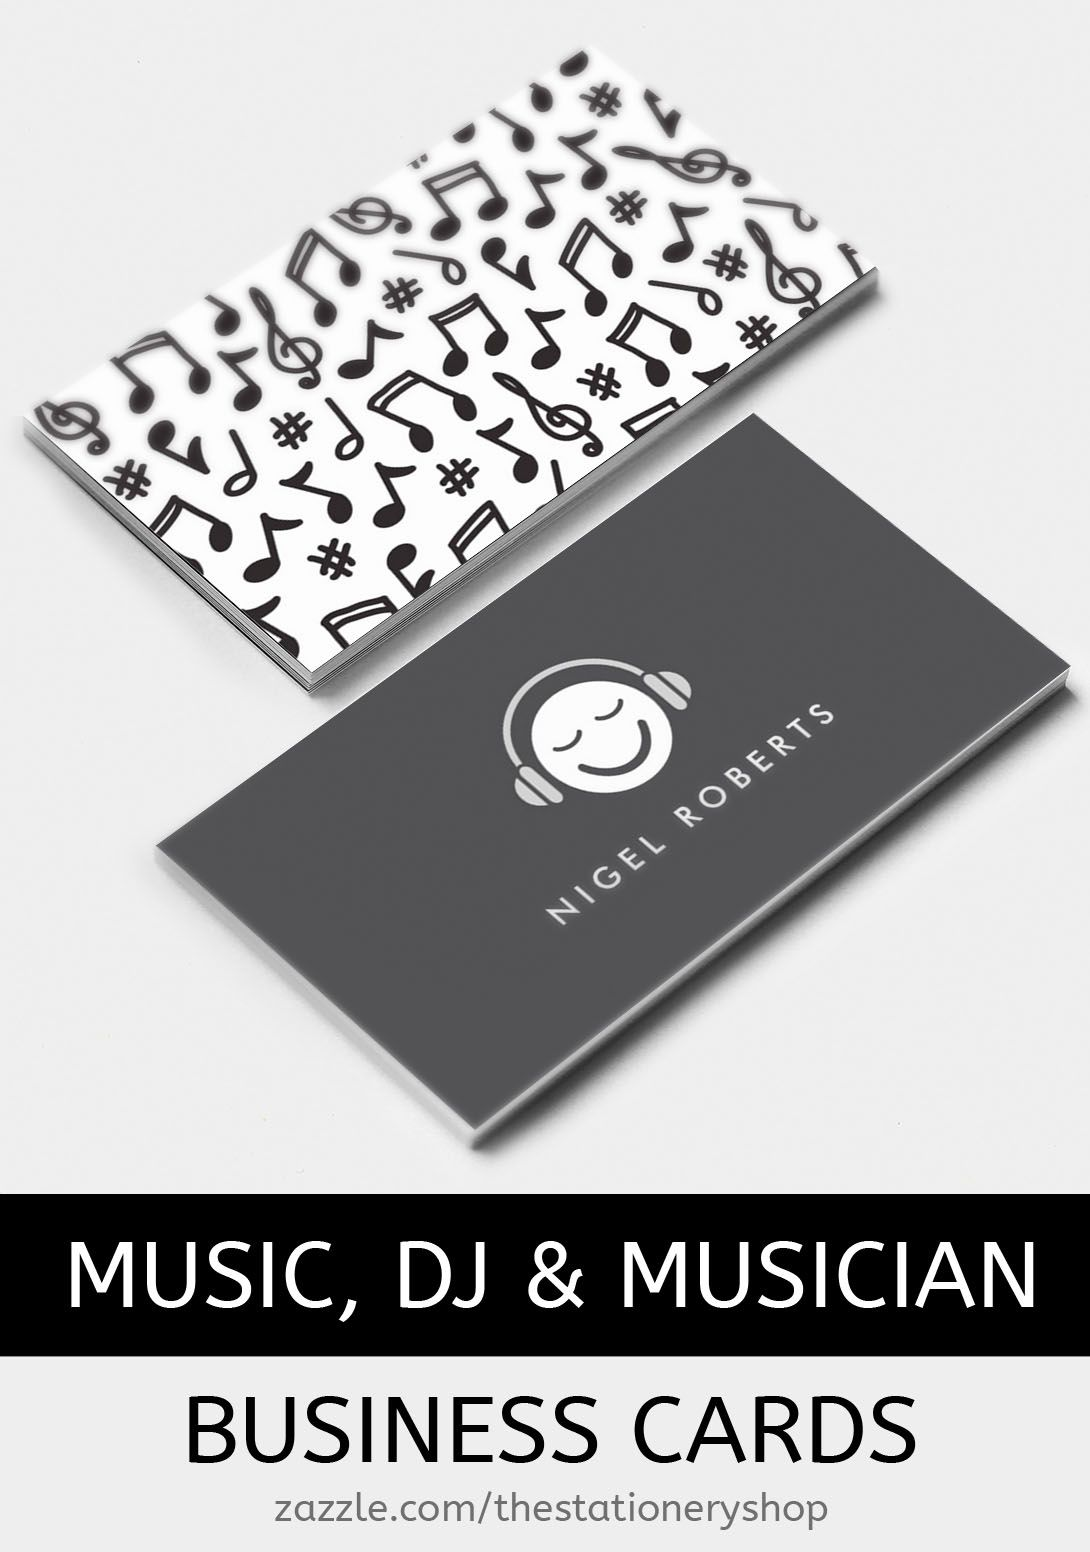 Music business cards from The stationery shop, Zazzle. Ideal for ...